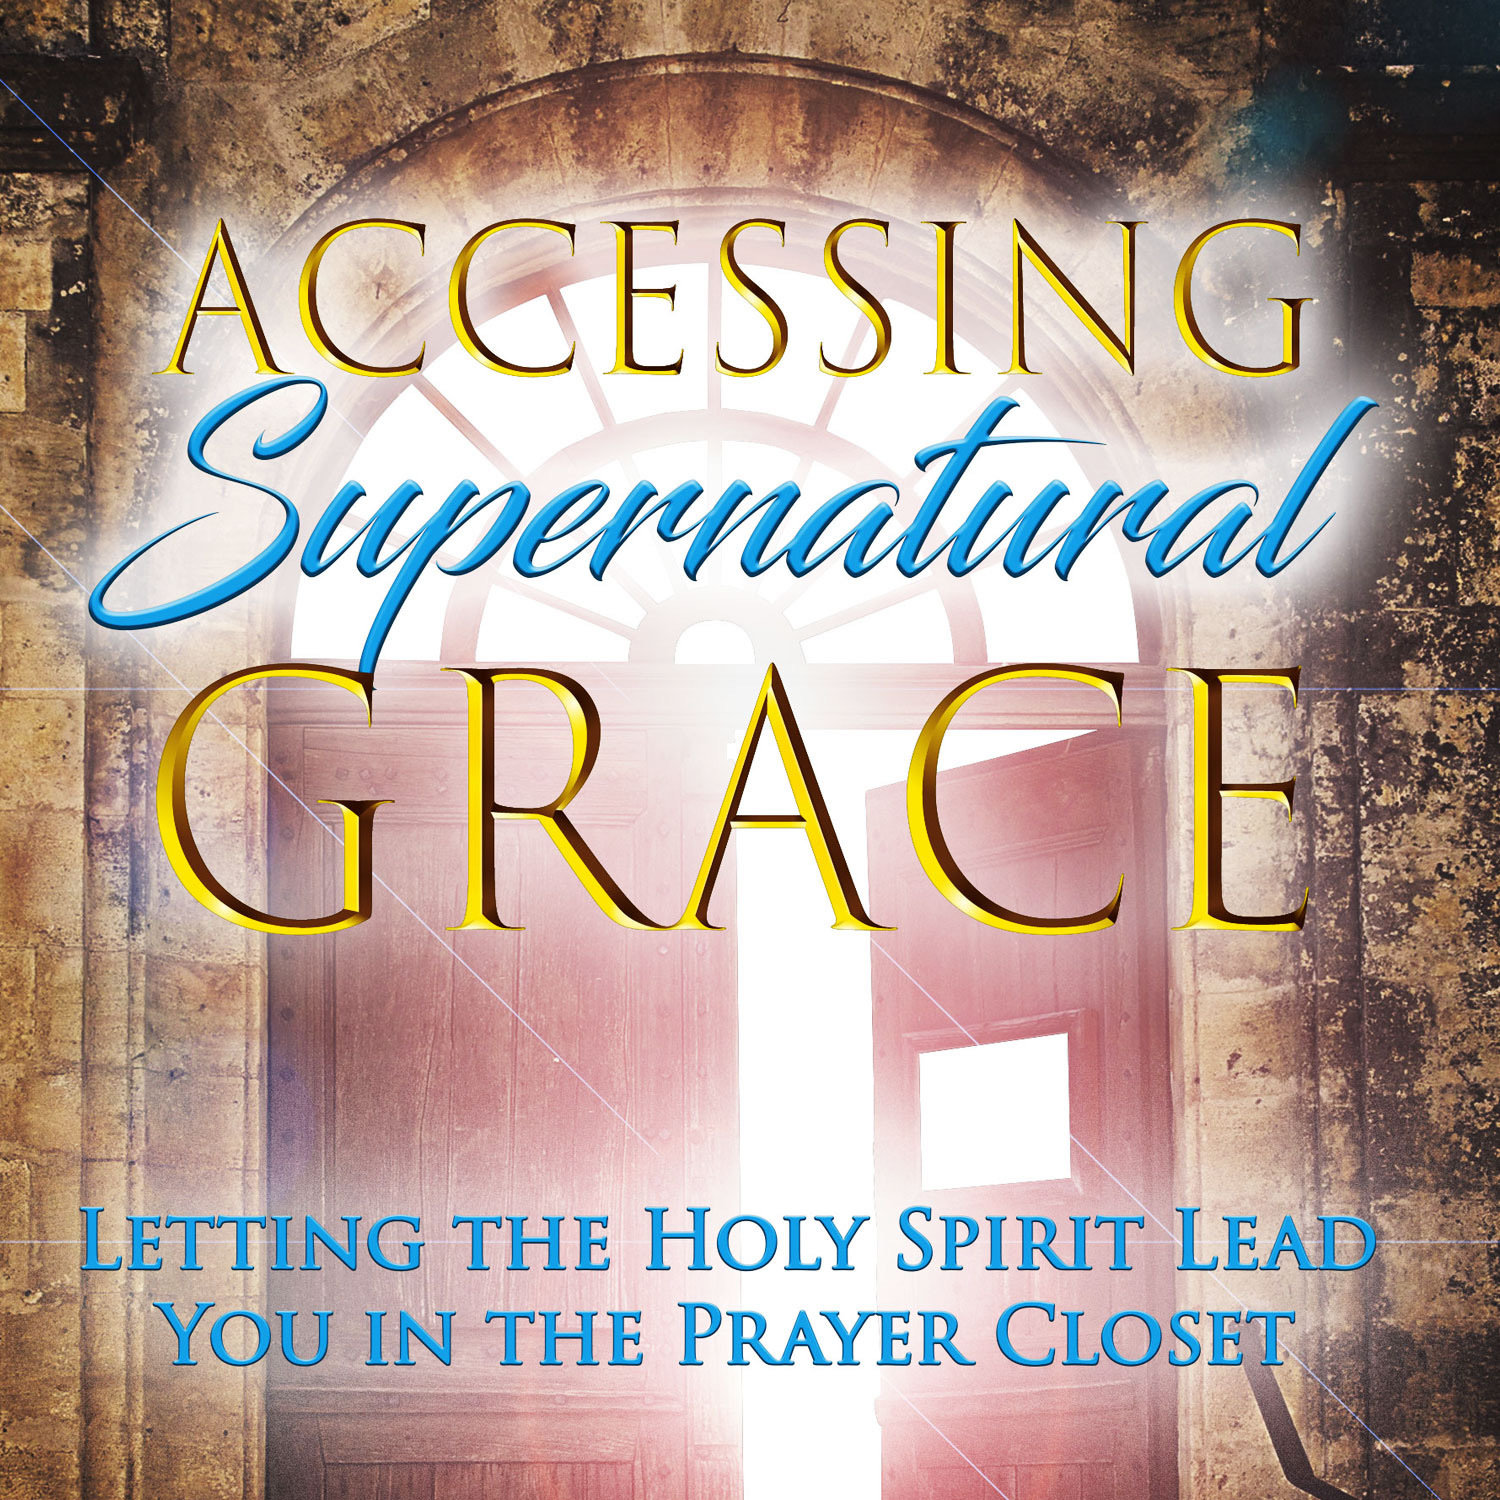 Accessing Supernatural Grace (ePub/PDF download)